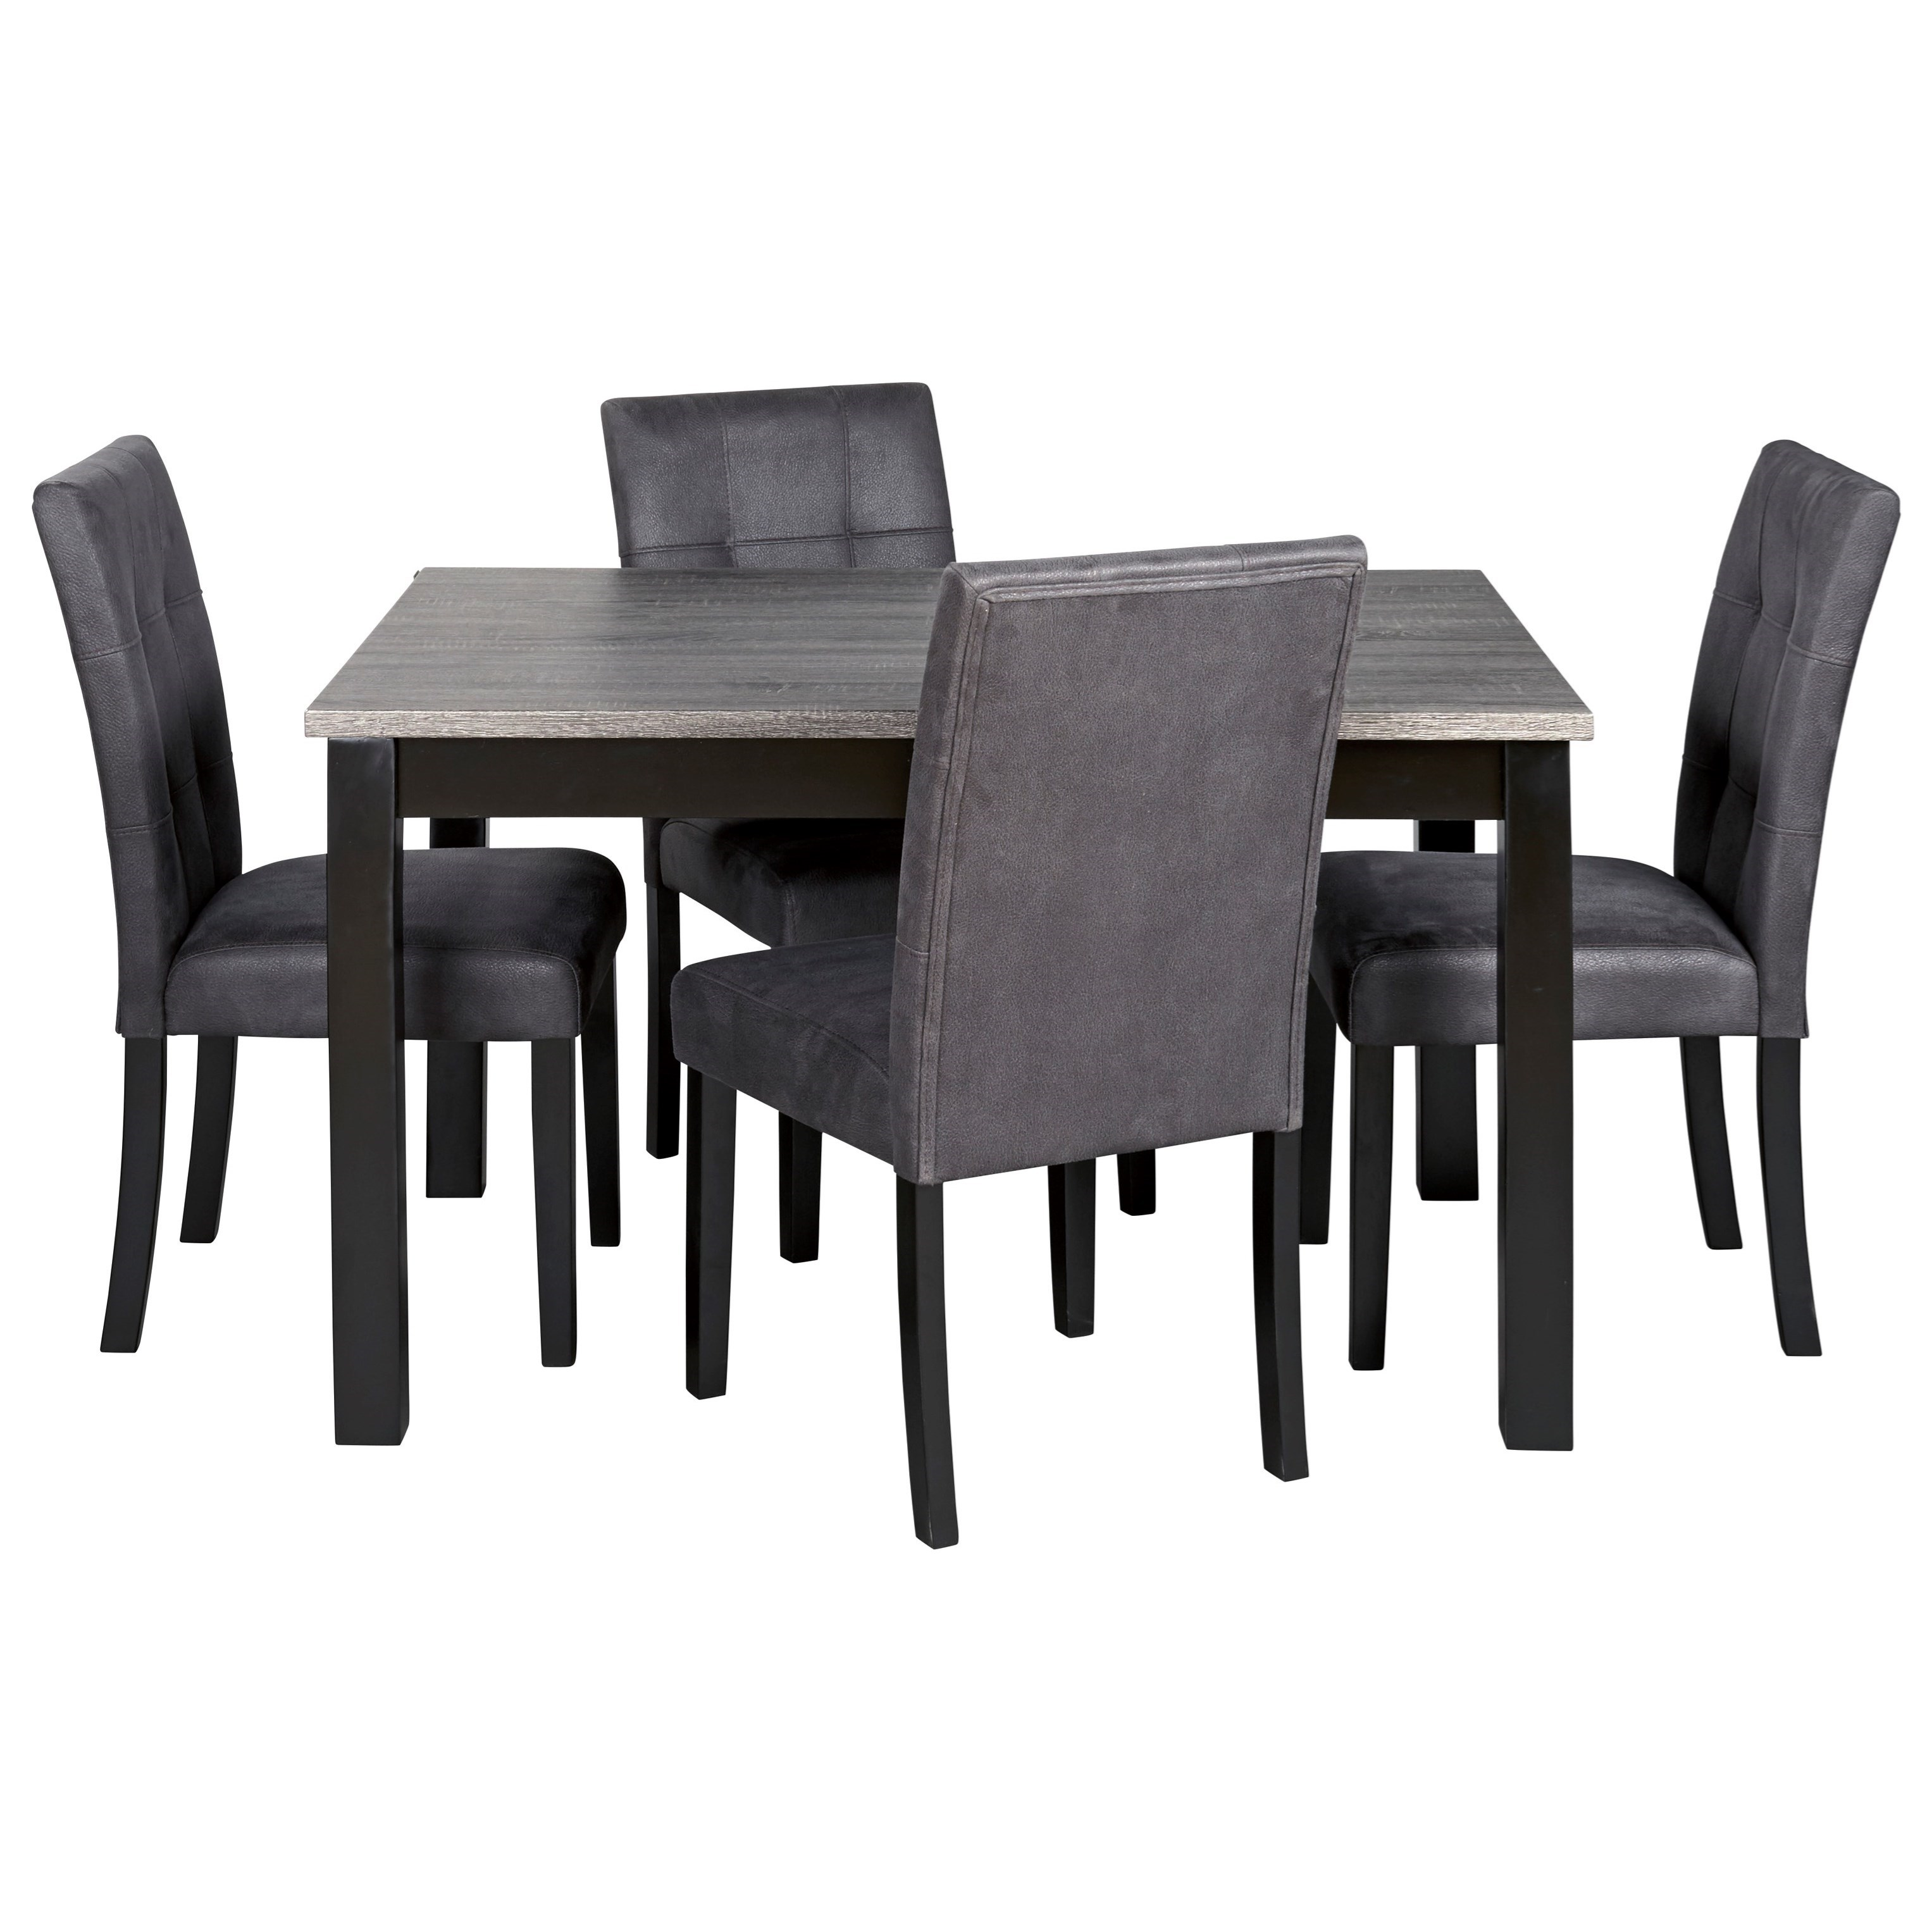 Garvine Rectangle Dining Room Table Set by Signature Design by Ashley at Northeast Factory Direct